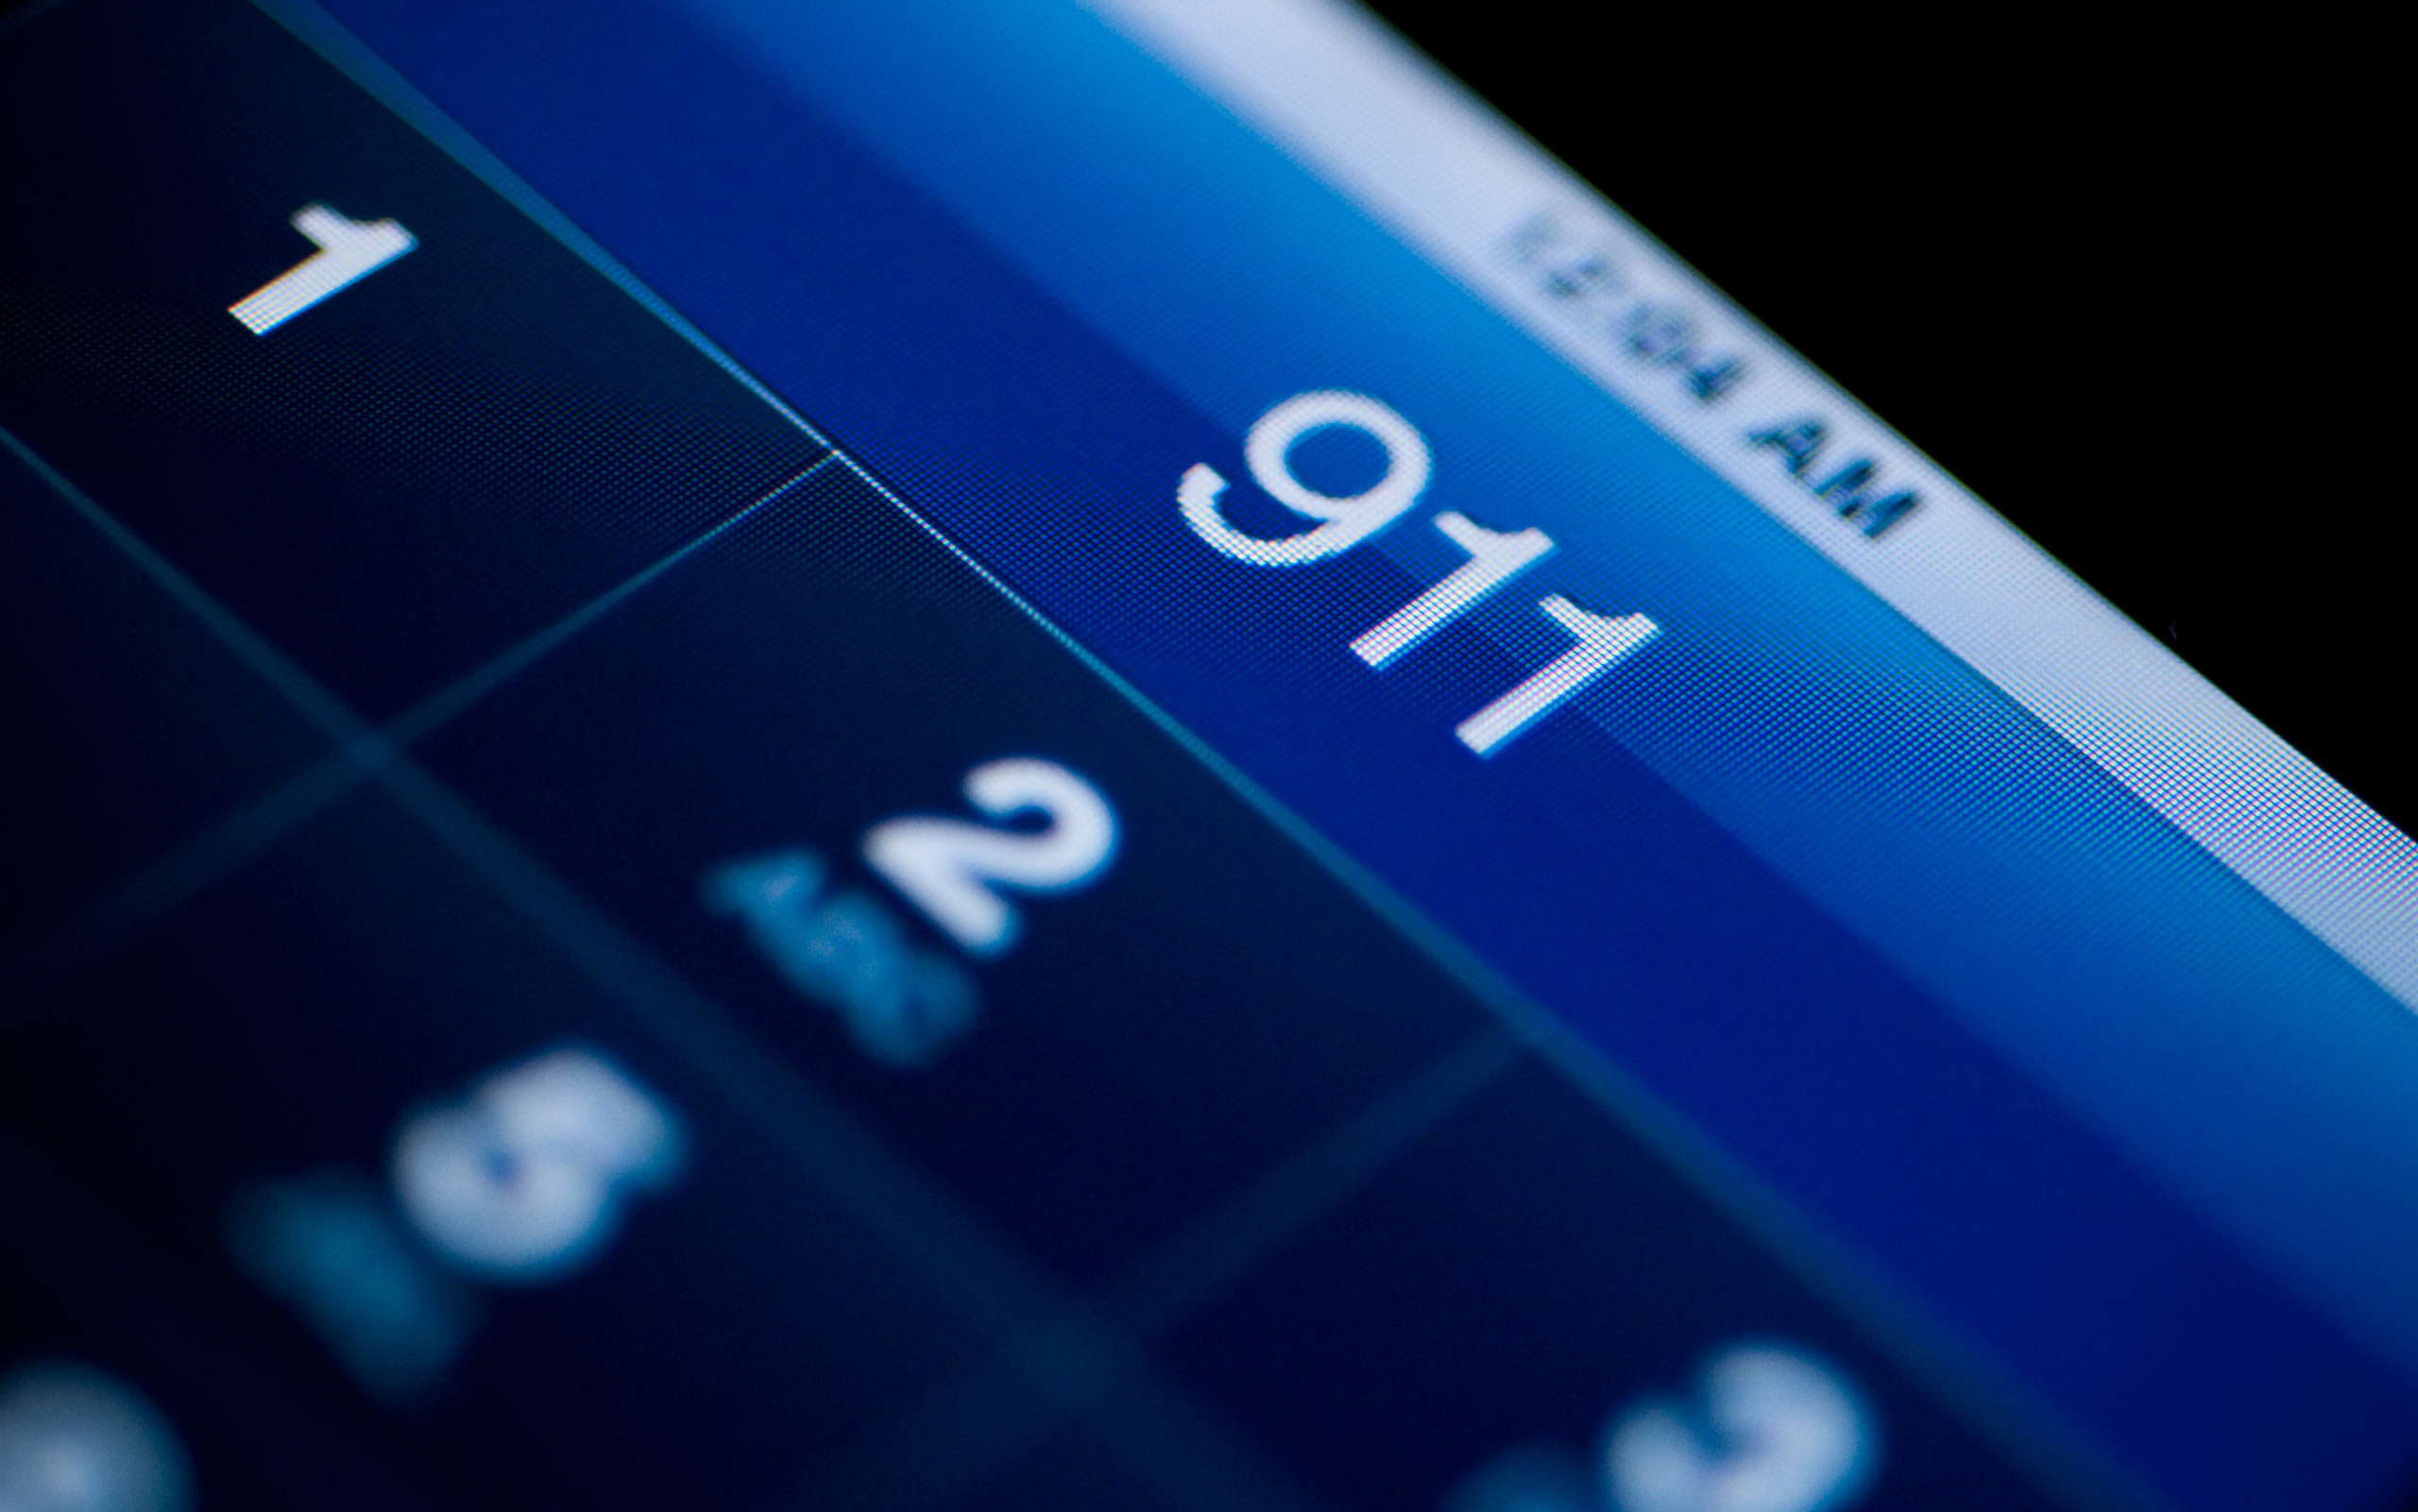 Cellular companies have been fighting for less expensive 911 location technology guidelines from the FCC.